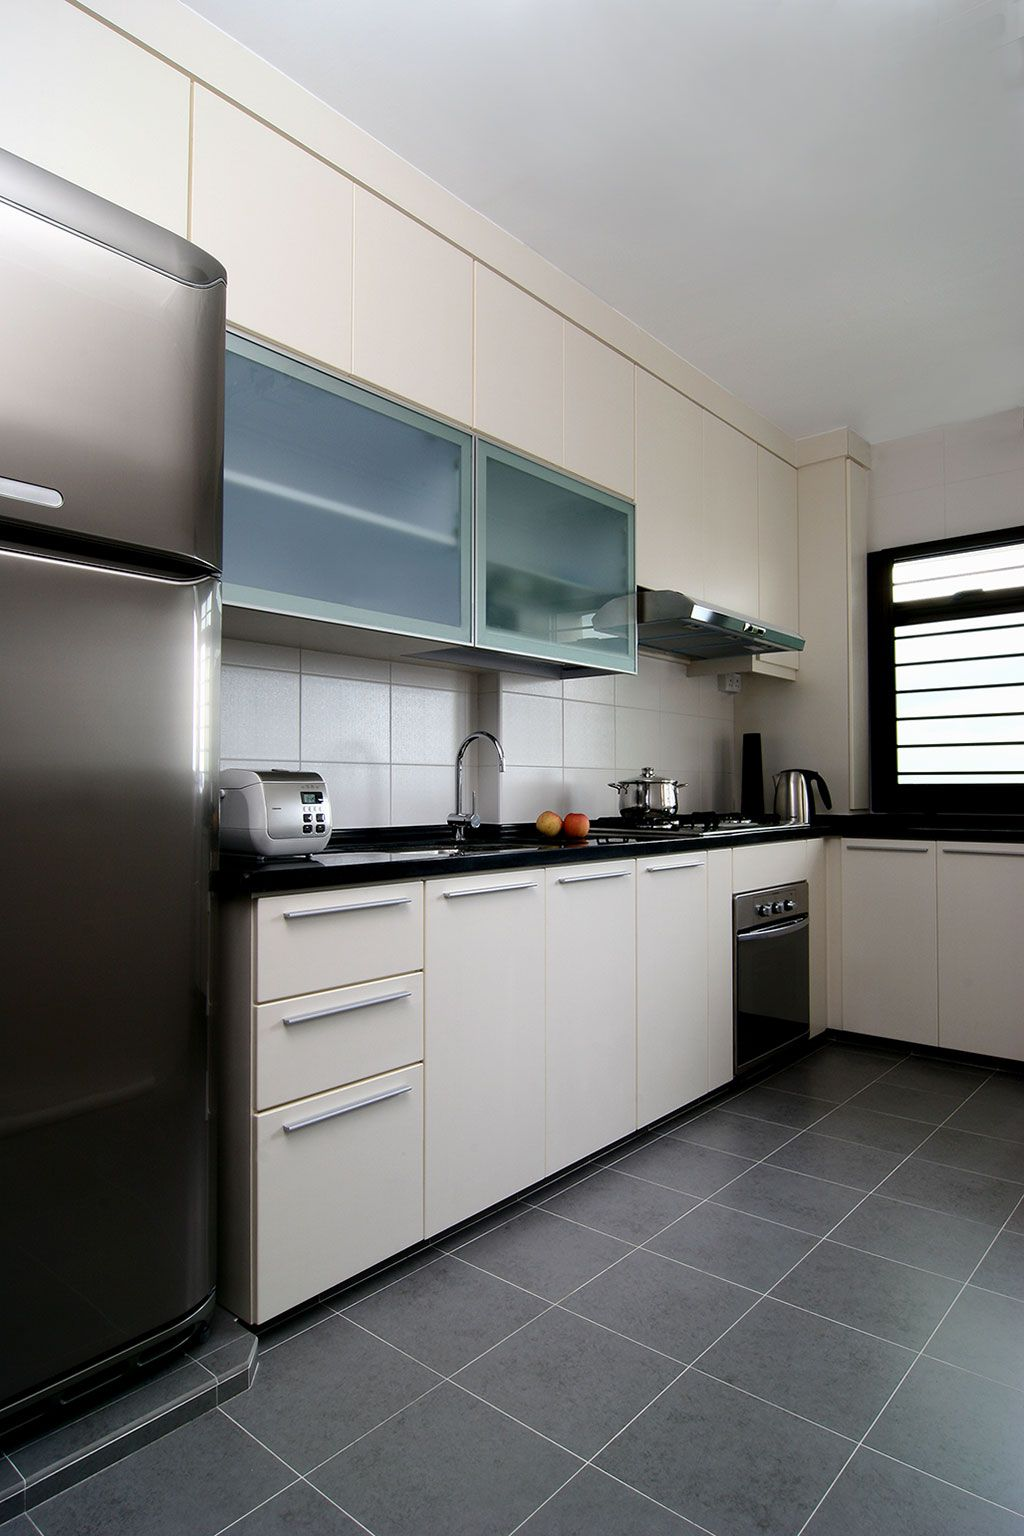 Hdb Kitchen Design Photos Pin By Wanqi Chang On Ideas For My Greenwalk Interior